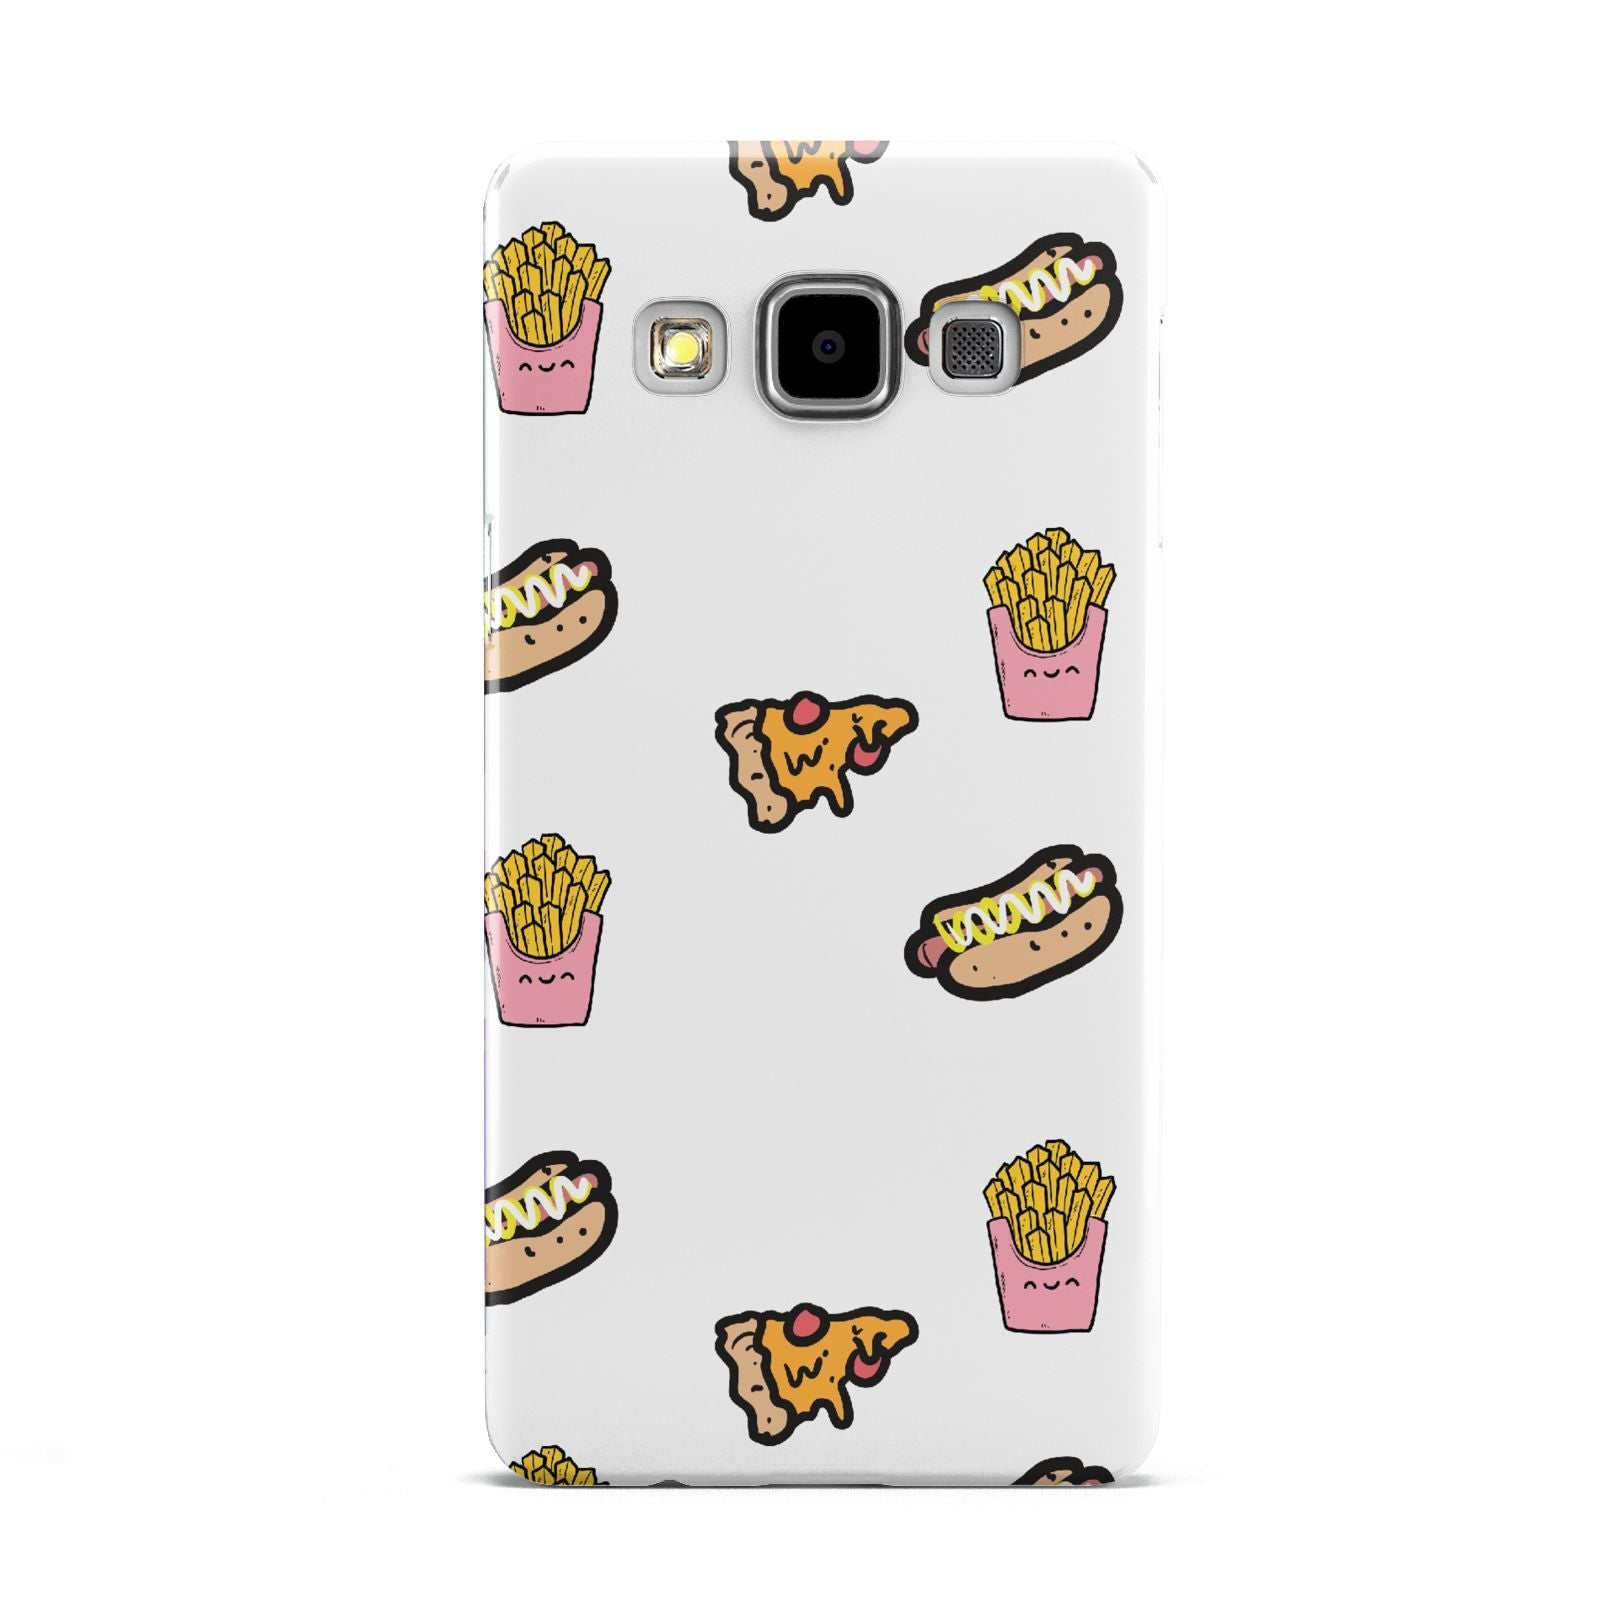 Fries Pizza Hot Dog Samsung Galaxy A5 Case